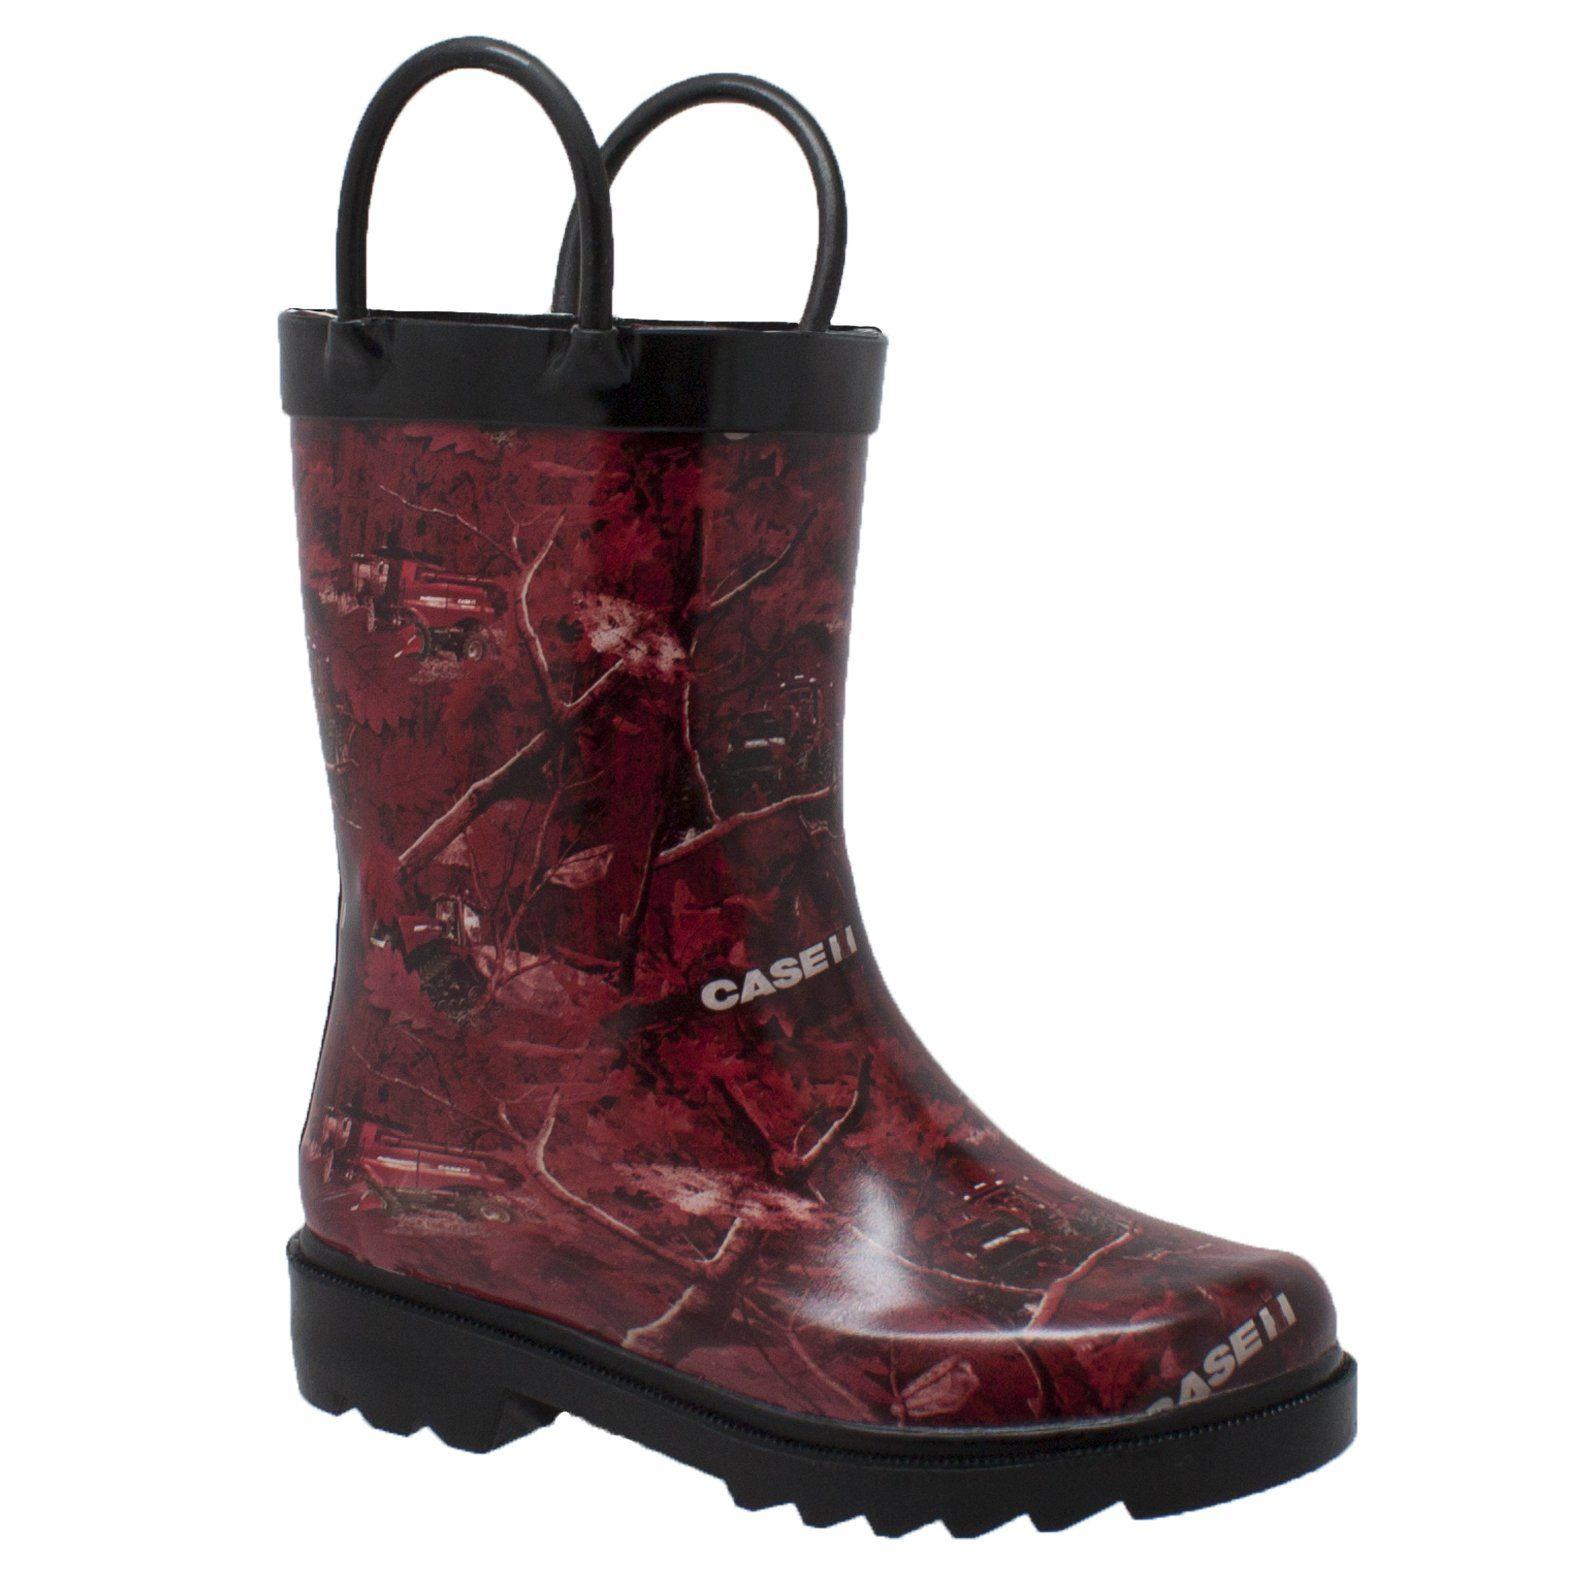 Children's Boots - Toddler's Red Camo Rubber Boots